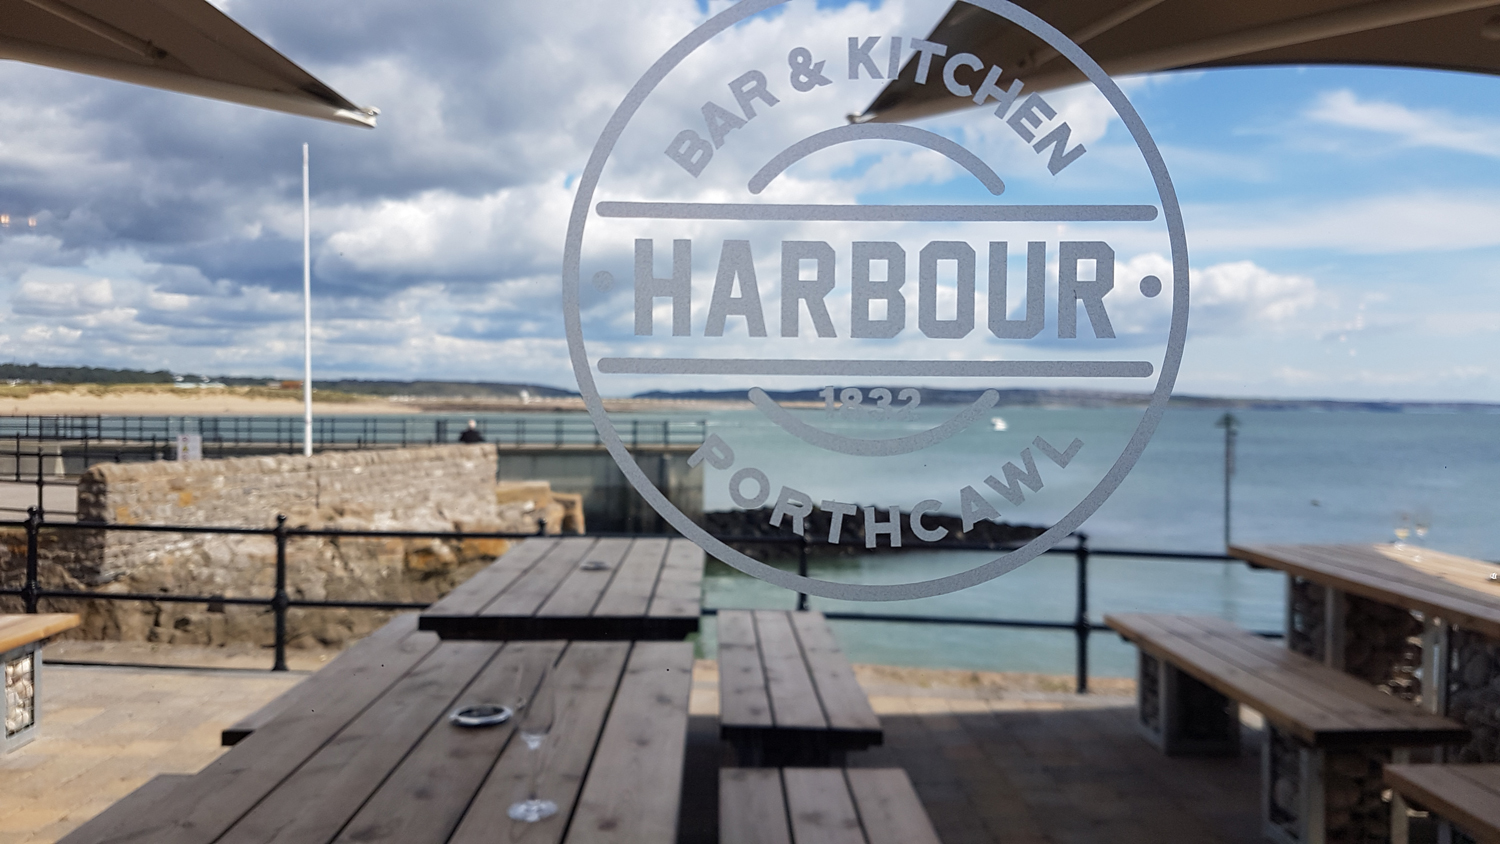 Harbour Bar And Kitchen Porthcawl